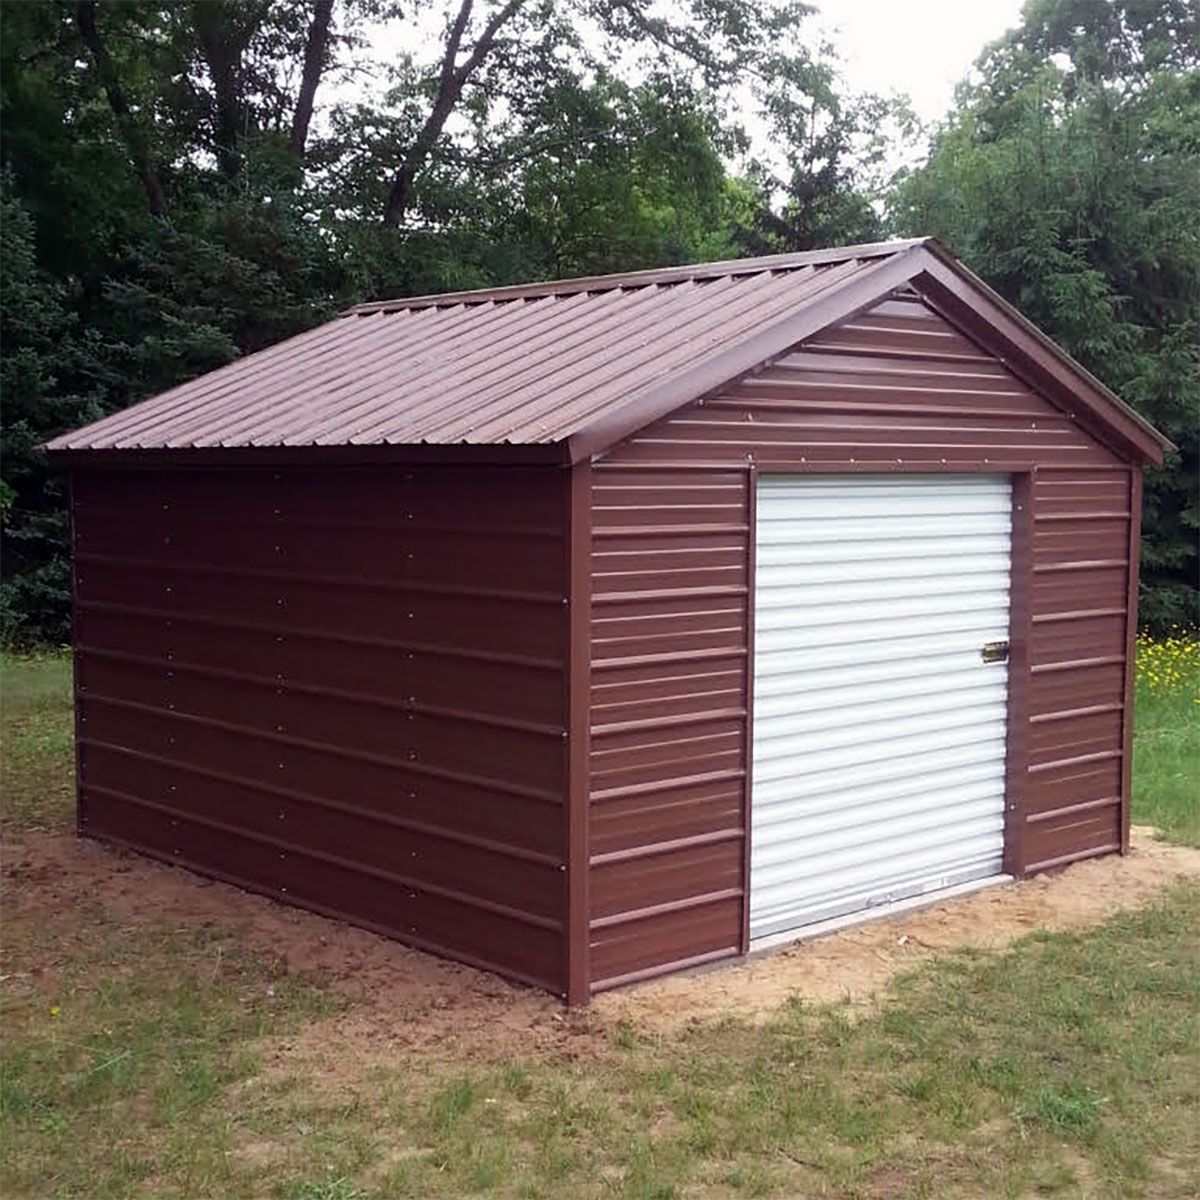 10x12x8 Metal Shed installed in Michigan.Visit www